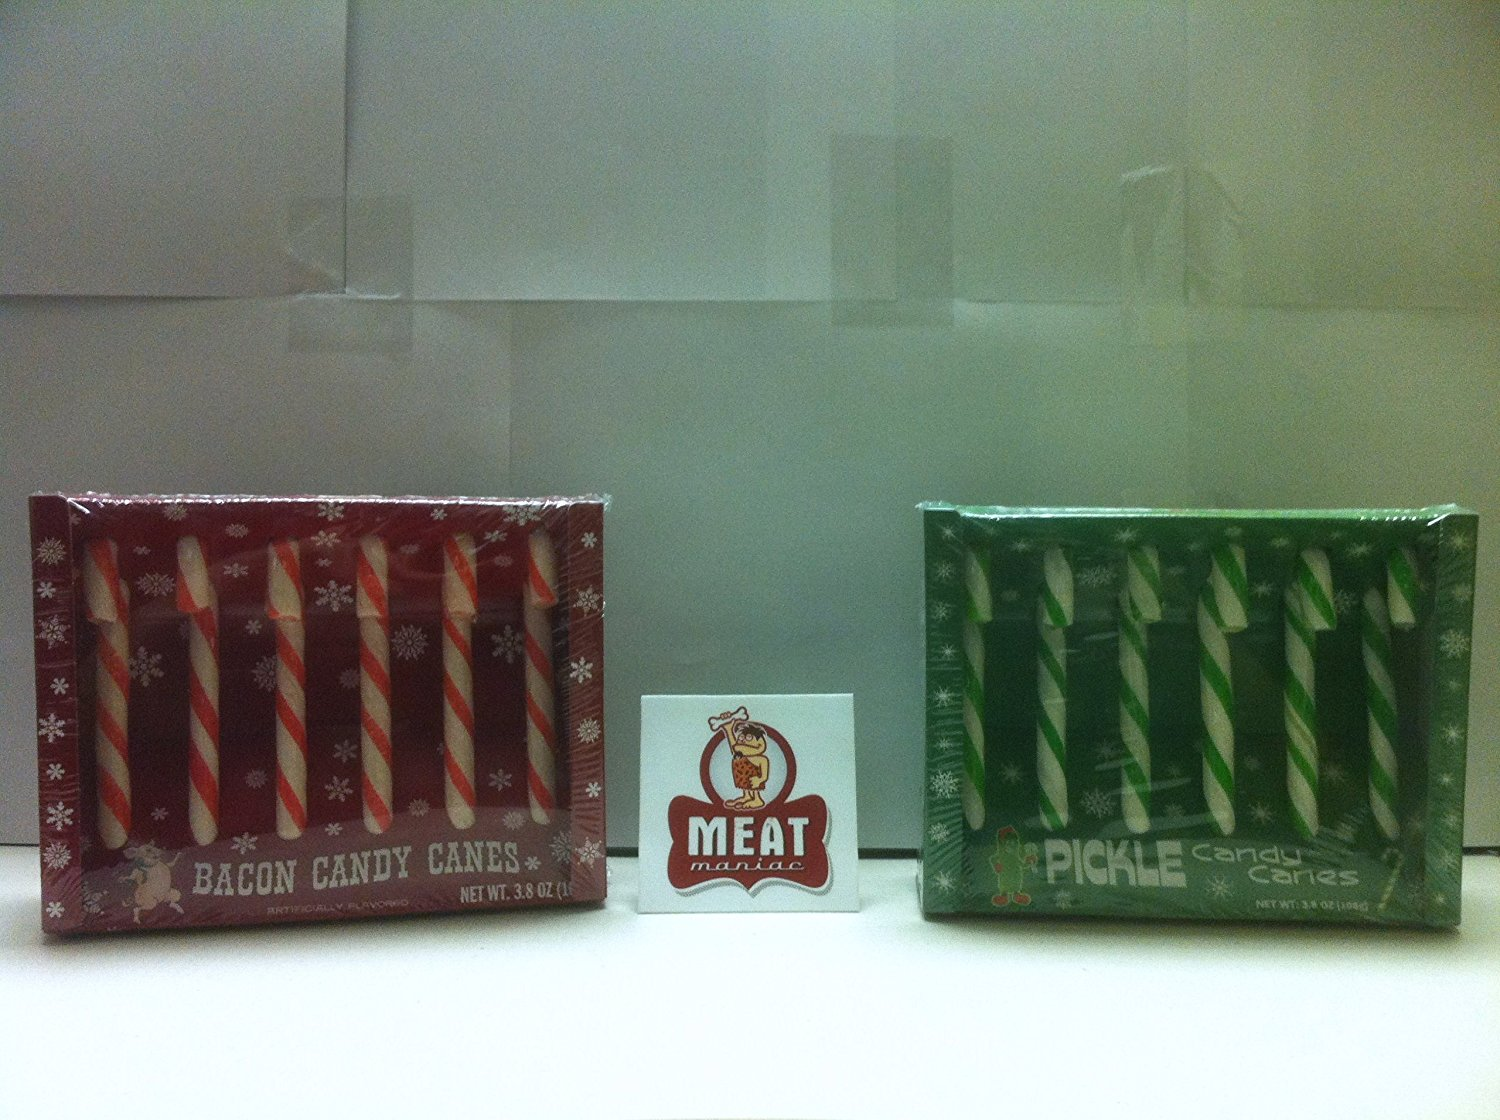 MEAT MANIAC Exotic Candy Canes Combo Gift Pack with Sticker- Bacon Candy Canes & Pickle Candy Canes